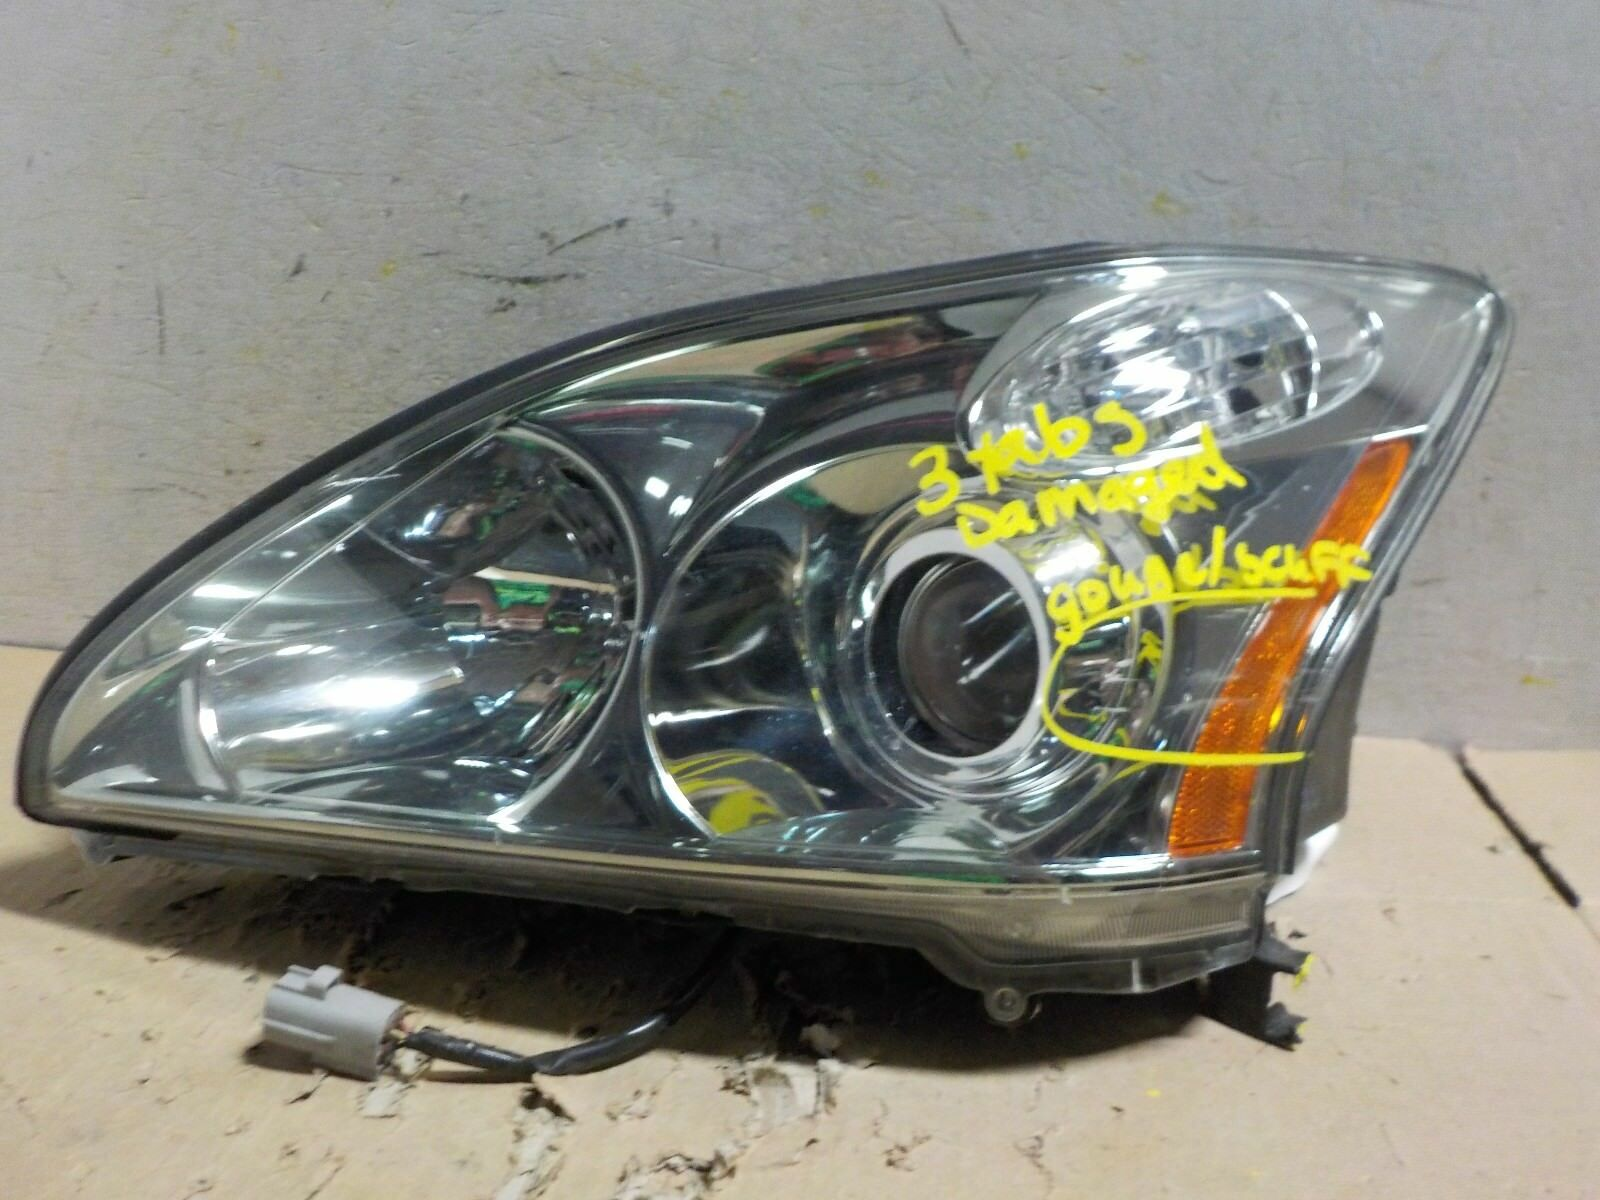 CLEAN USED LEXUS RX 330 2005 HEADLIGHT SET